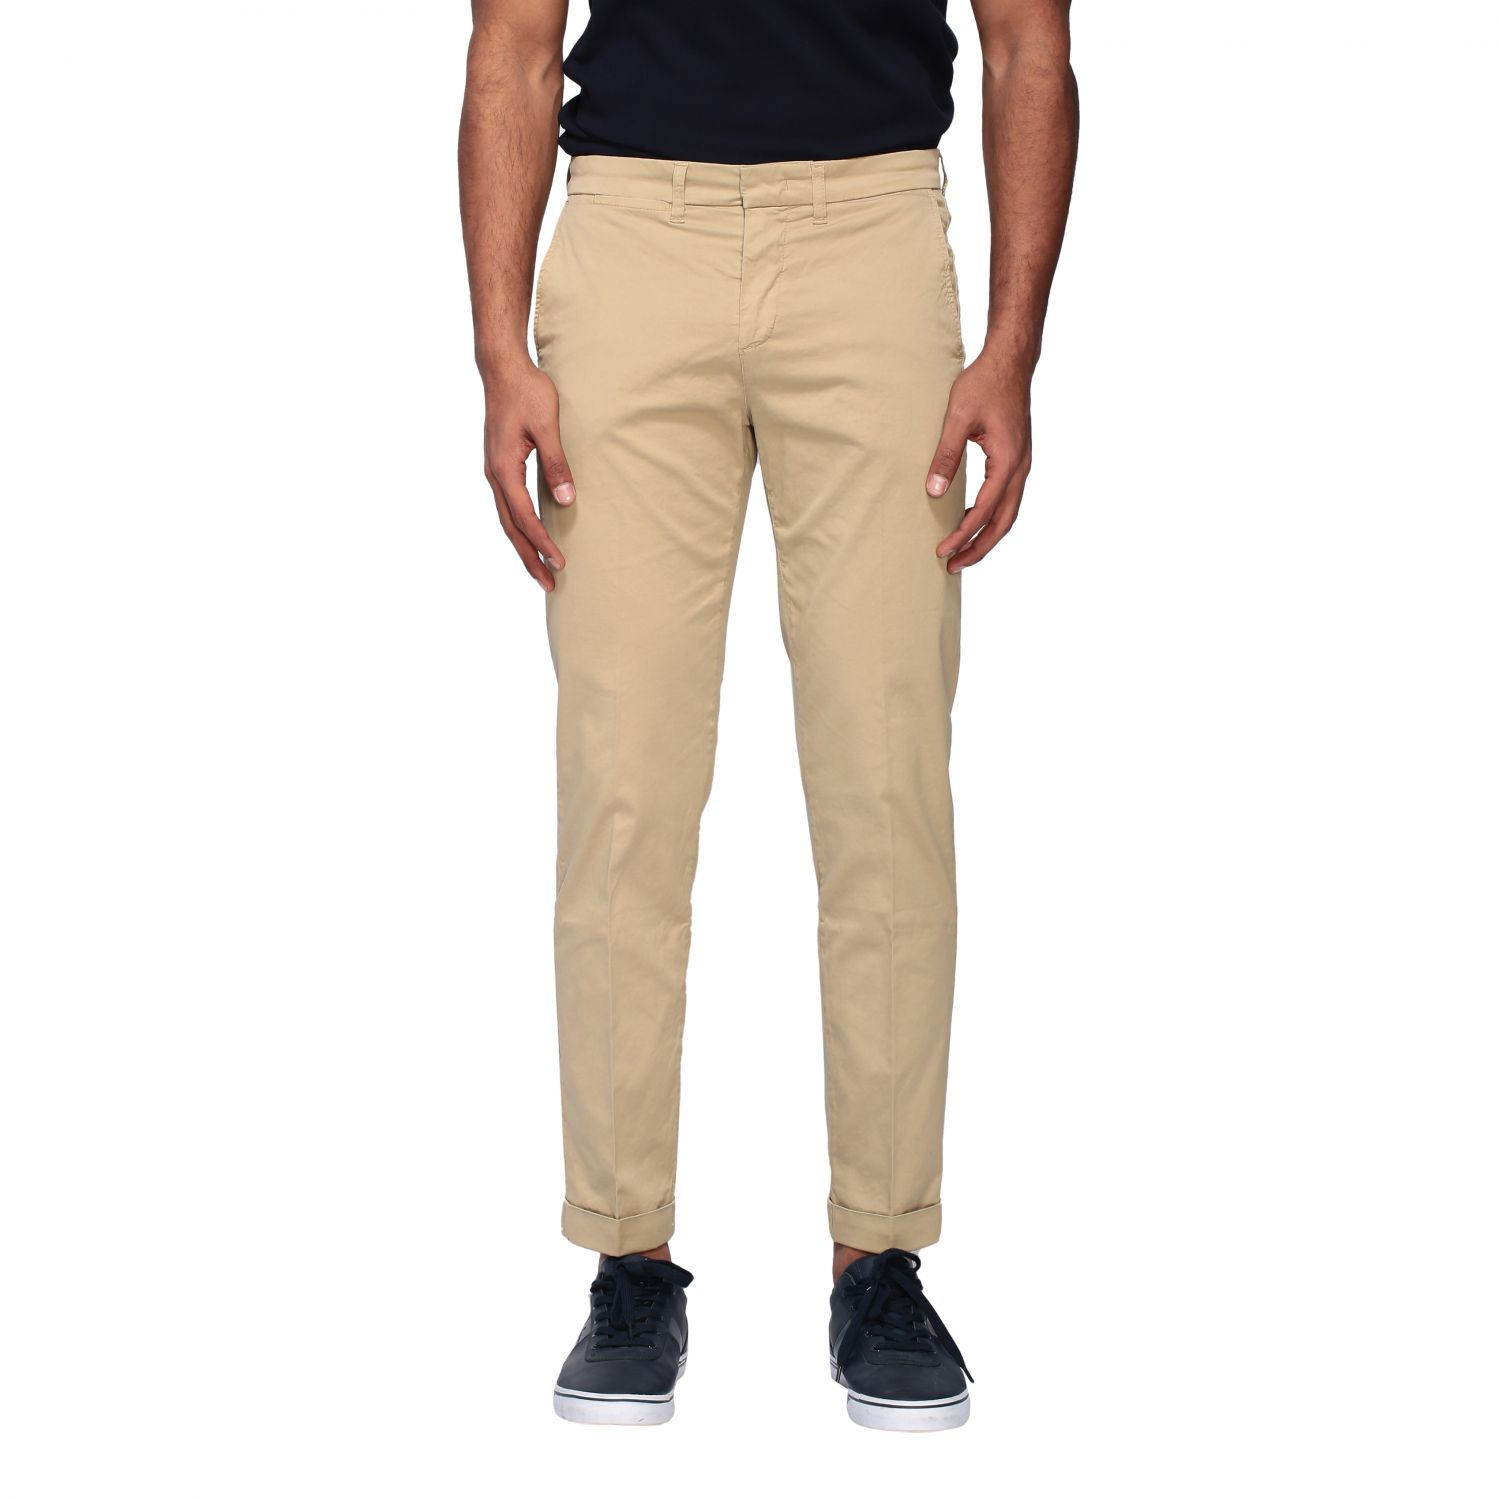 Pantalone Fay in gabardine stretch beige 1